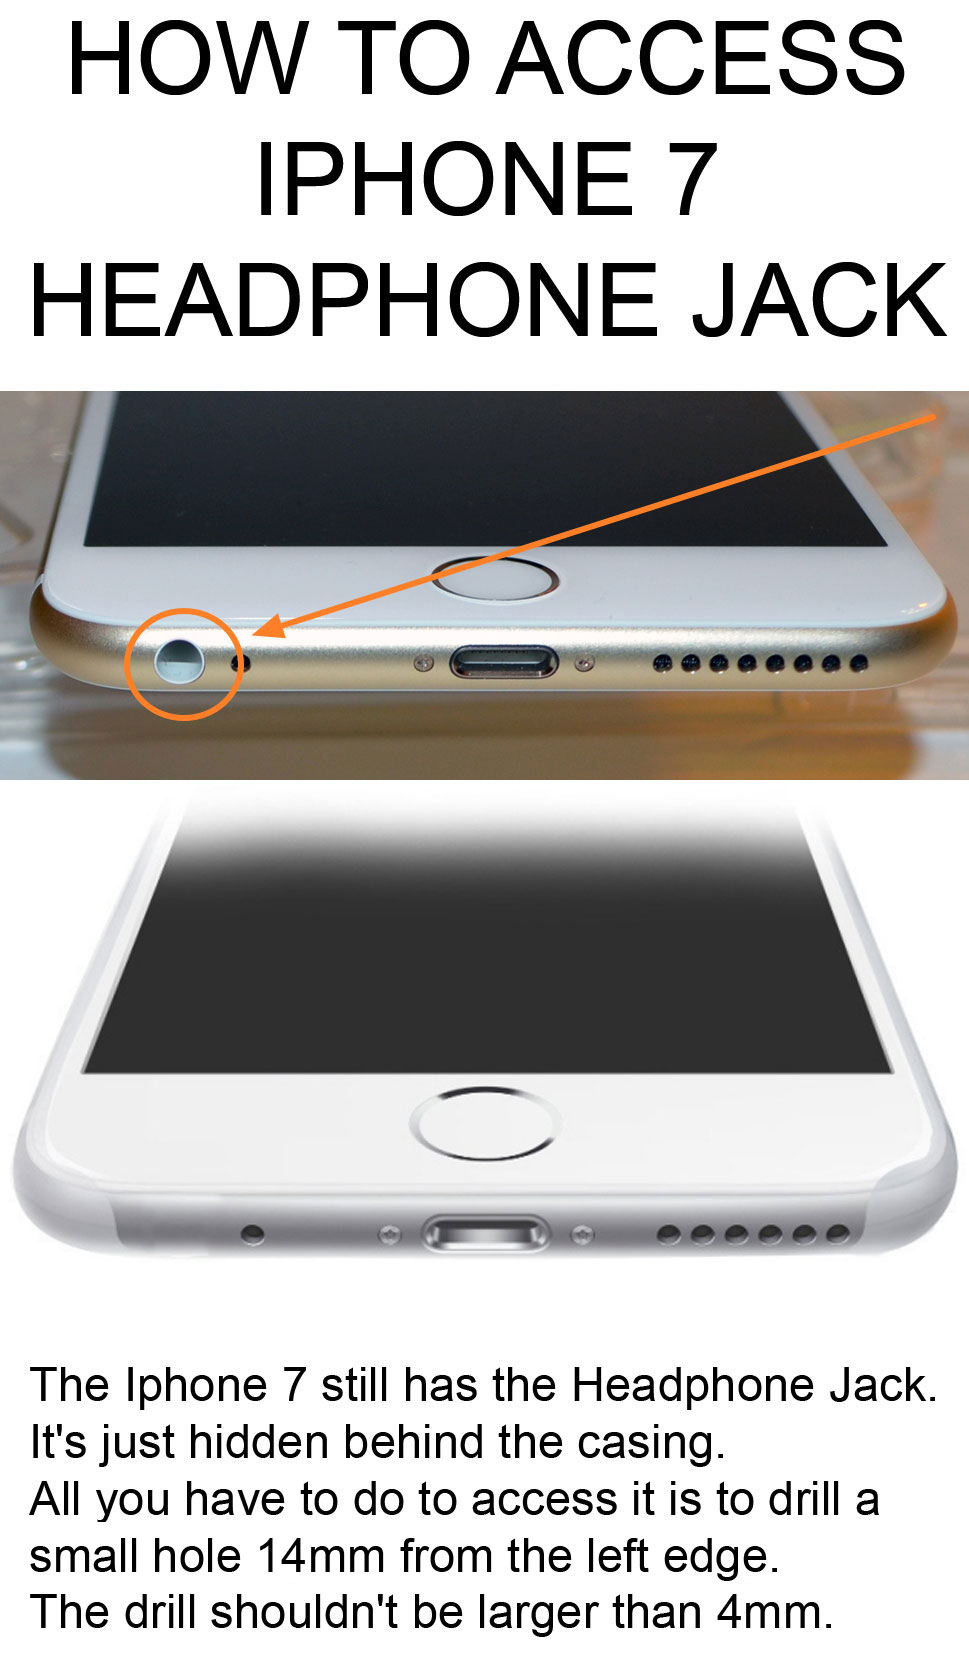 How to access iphone 7 headphone jack?